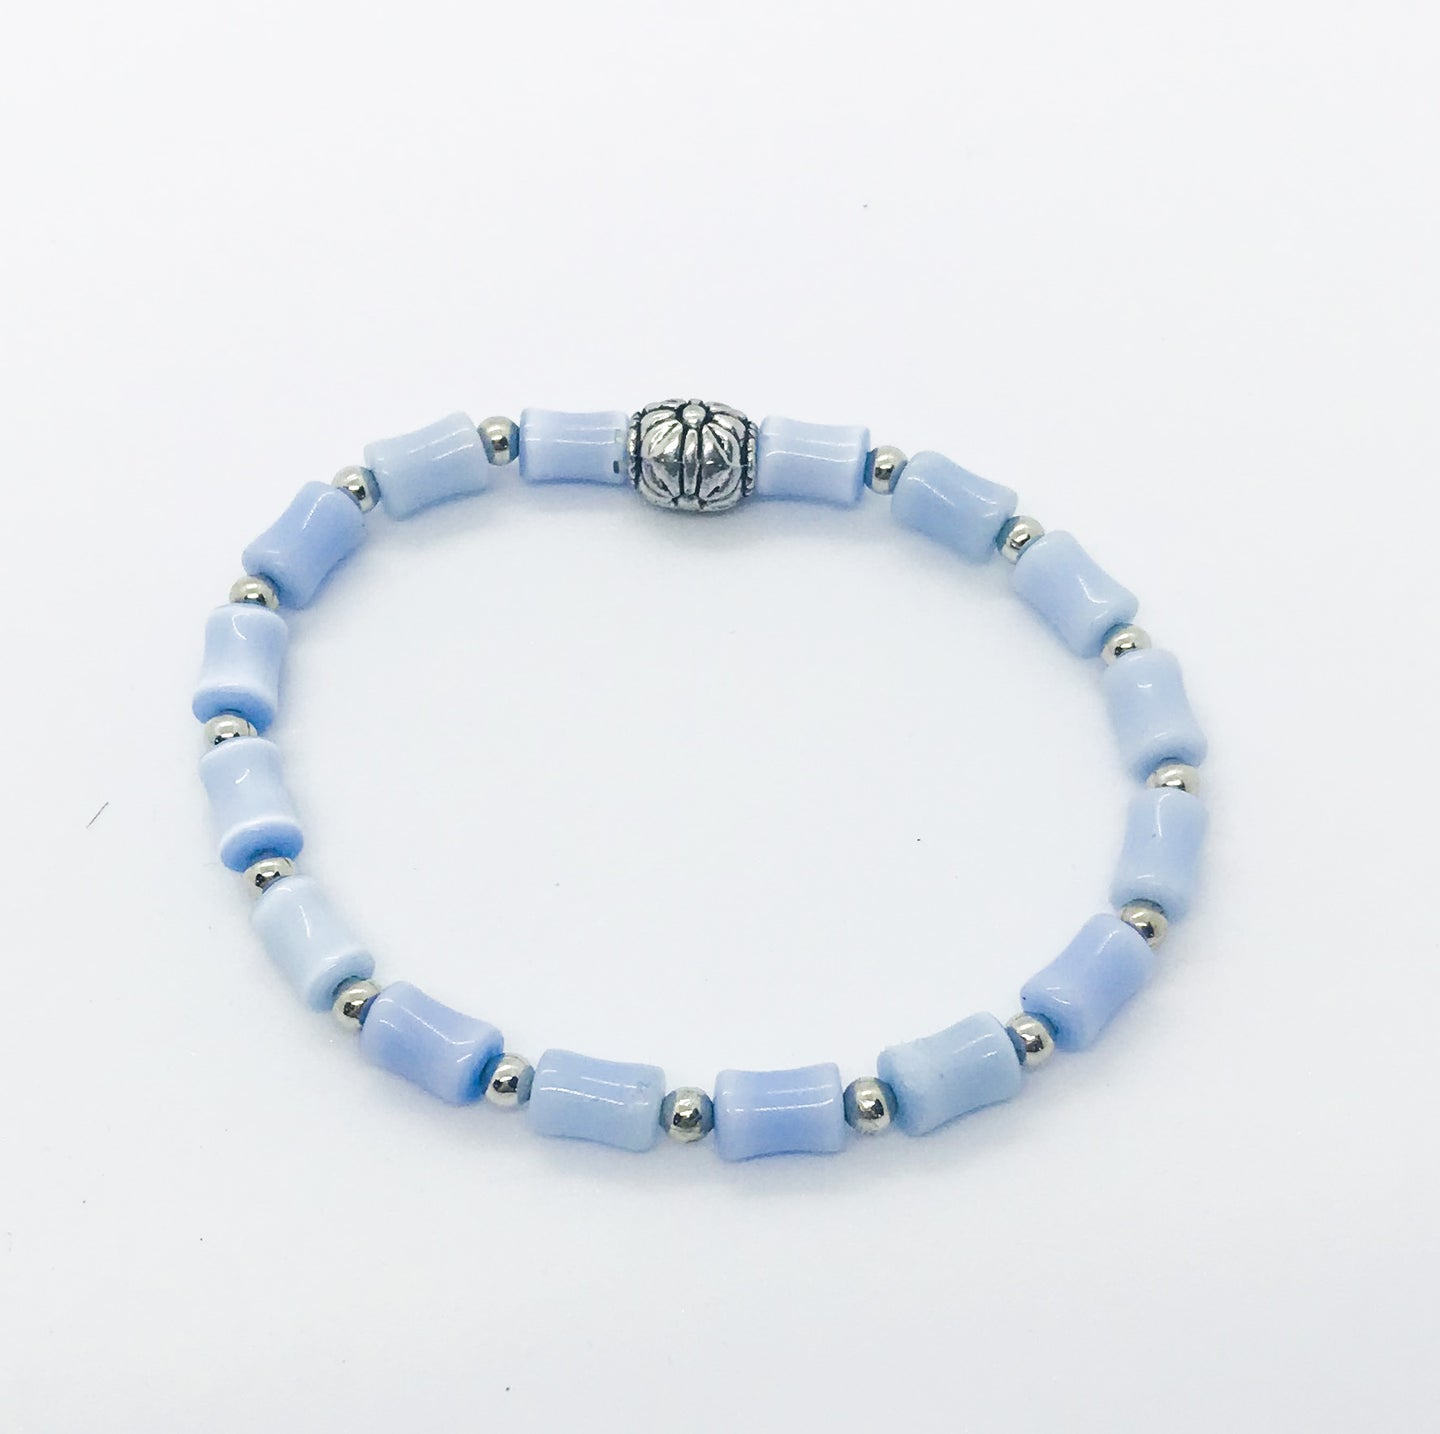 Glass Bead Stretchy Bracelet - B458